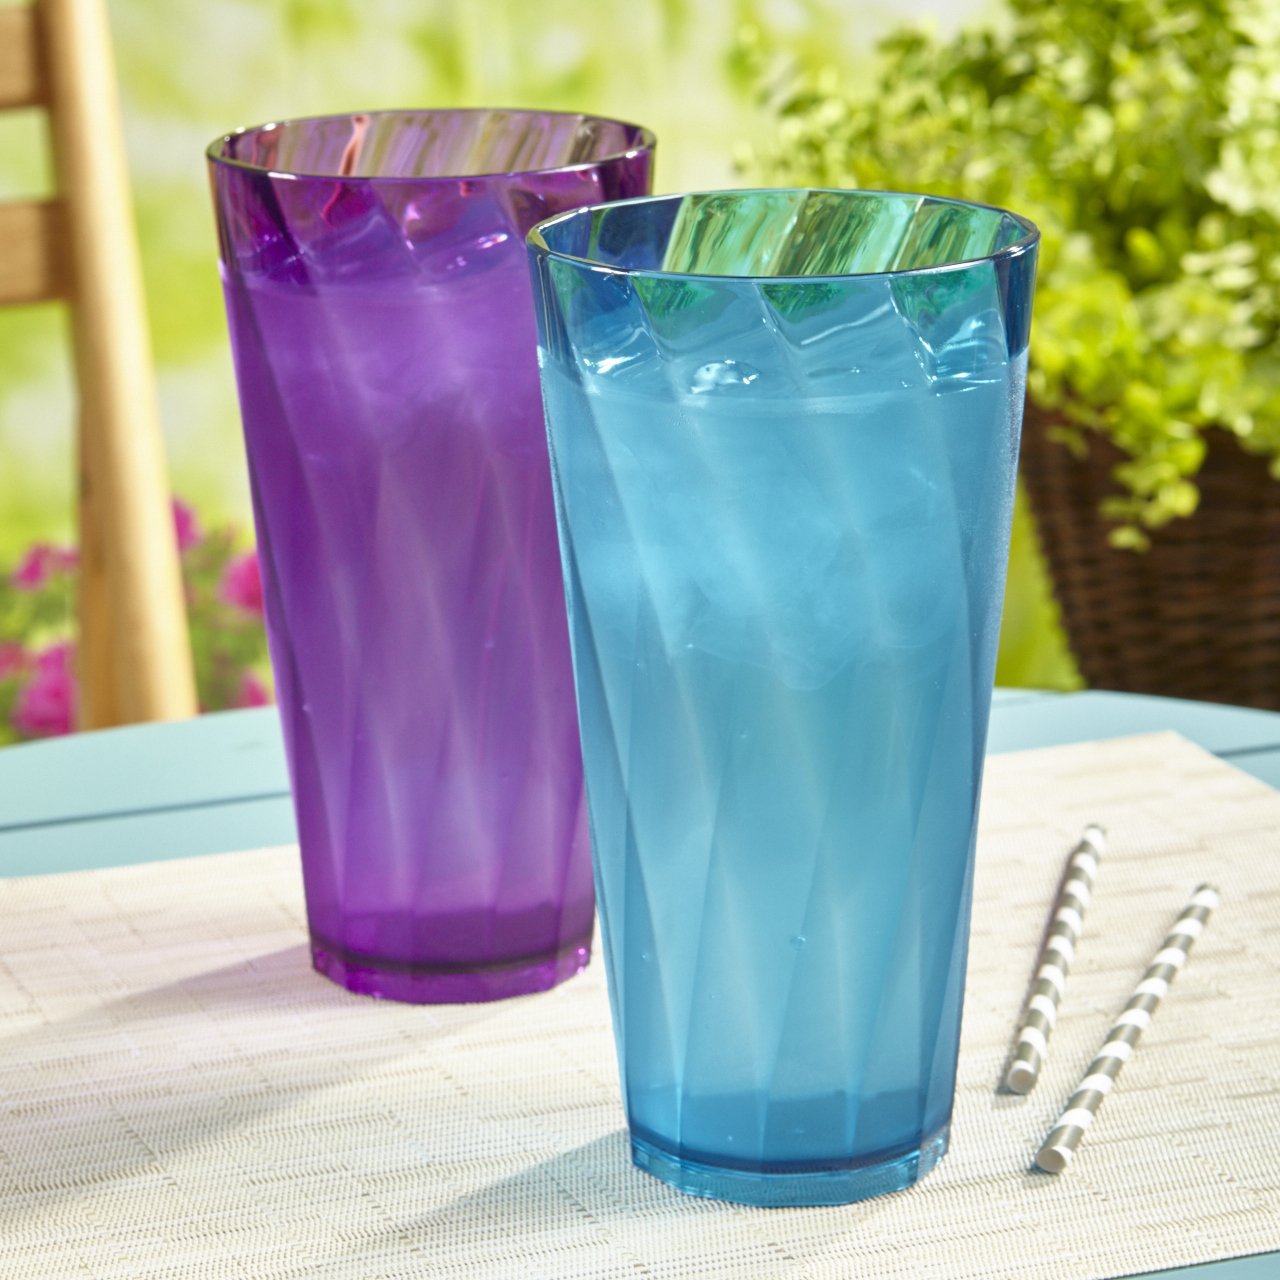 Optix 26-ounce Plastic Tumblers | set of 8 in 4 assorted colors by US Acrylic (Image #2)